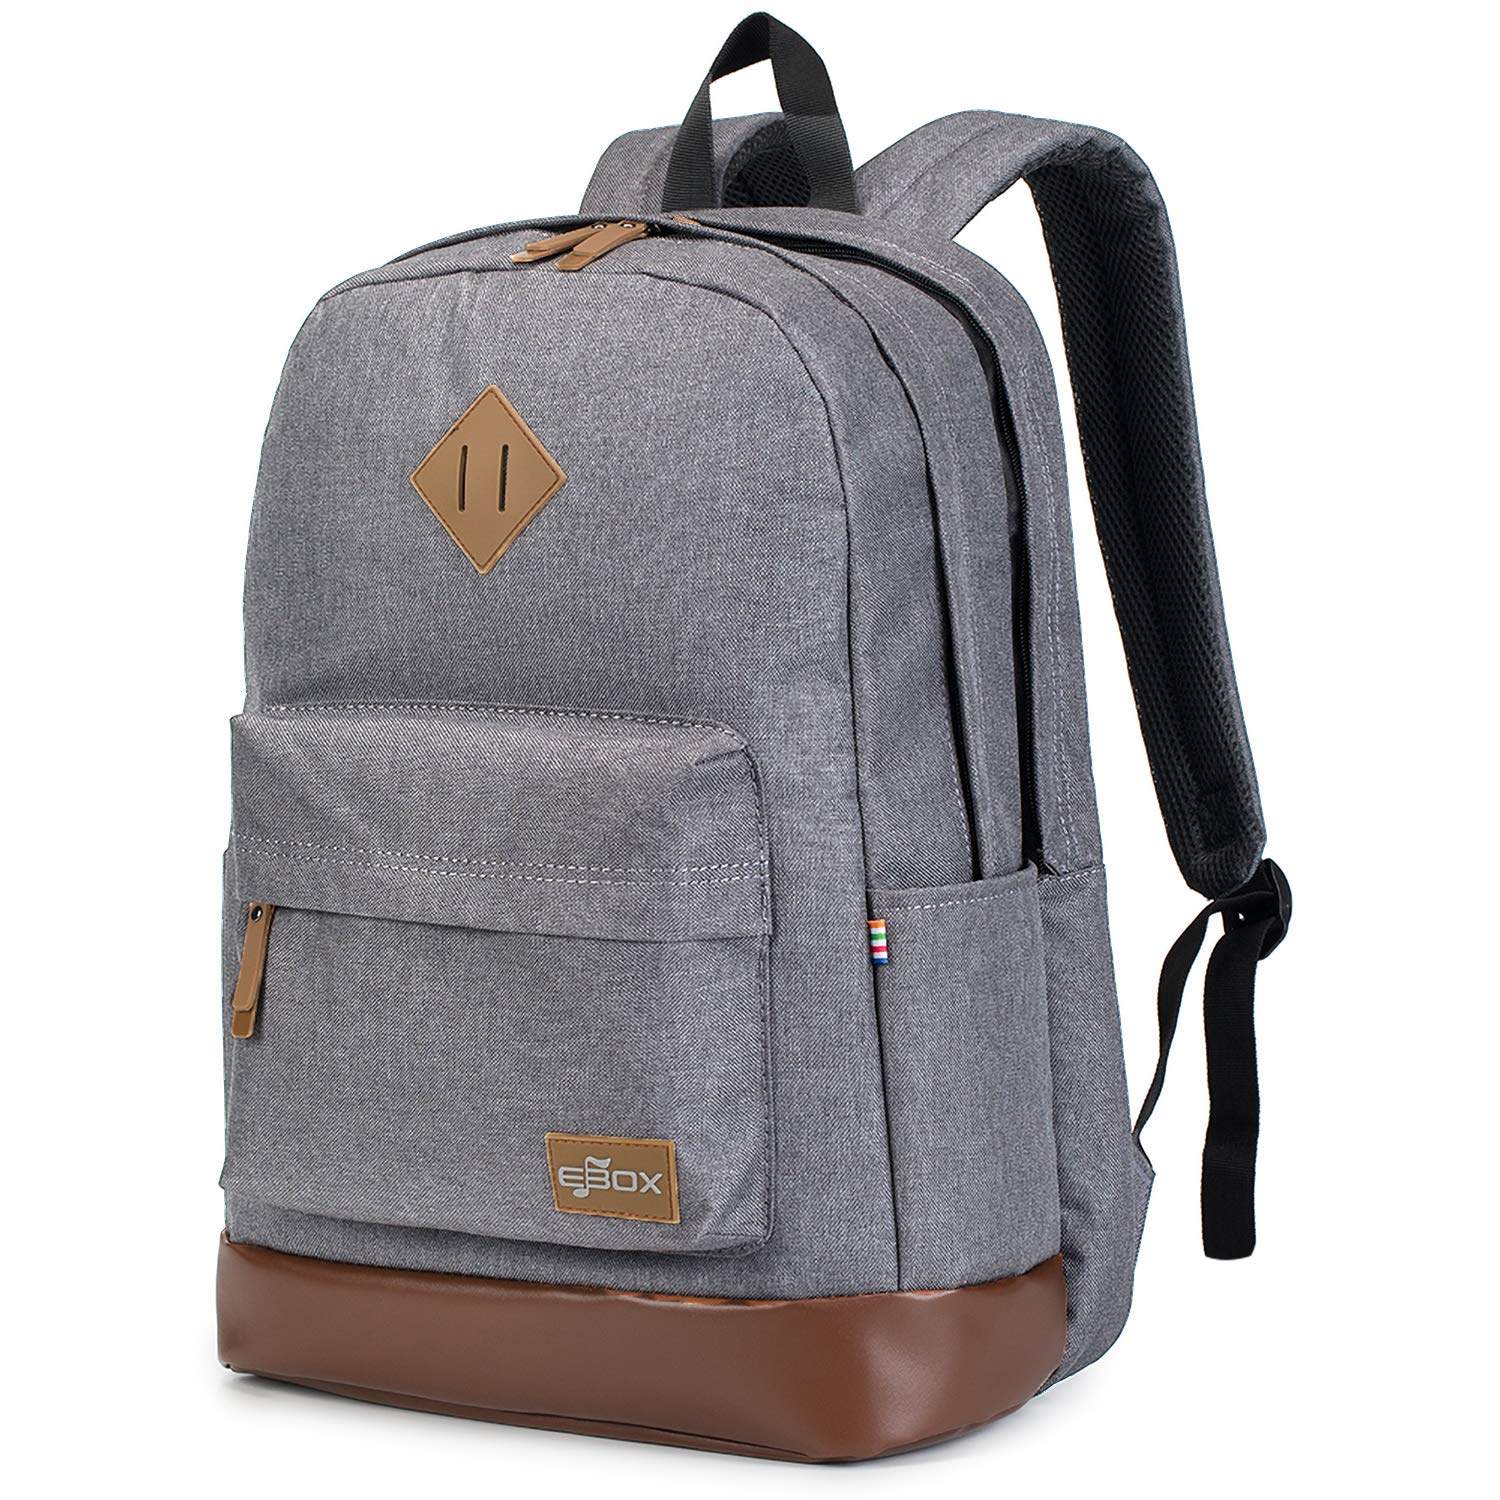 EBOX Unisex 2-Layer Water Resistant Travel Hiking Camping Business Polyester Laptop Backpack Backpacks Daypack Fits 15 15.6 Inch Laptops - Grey by EBOX